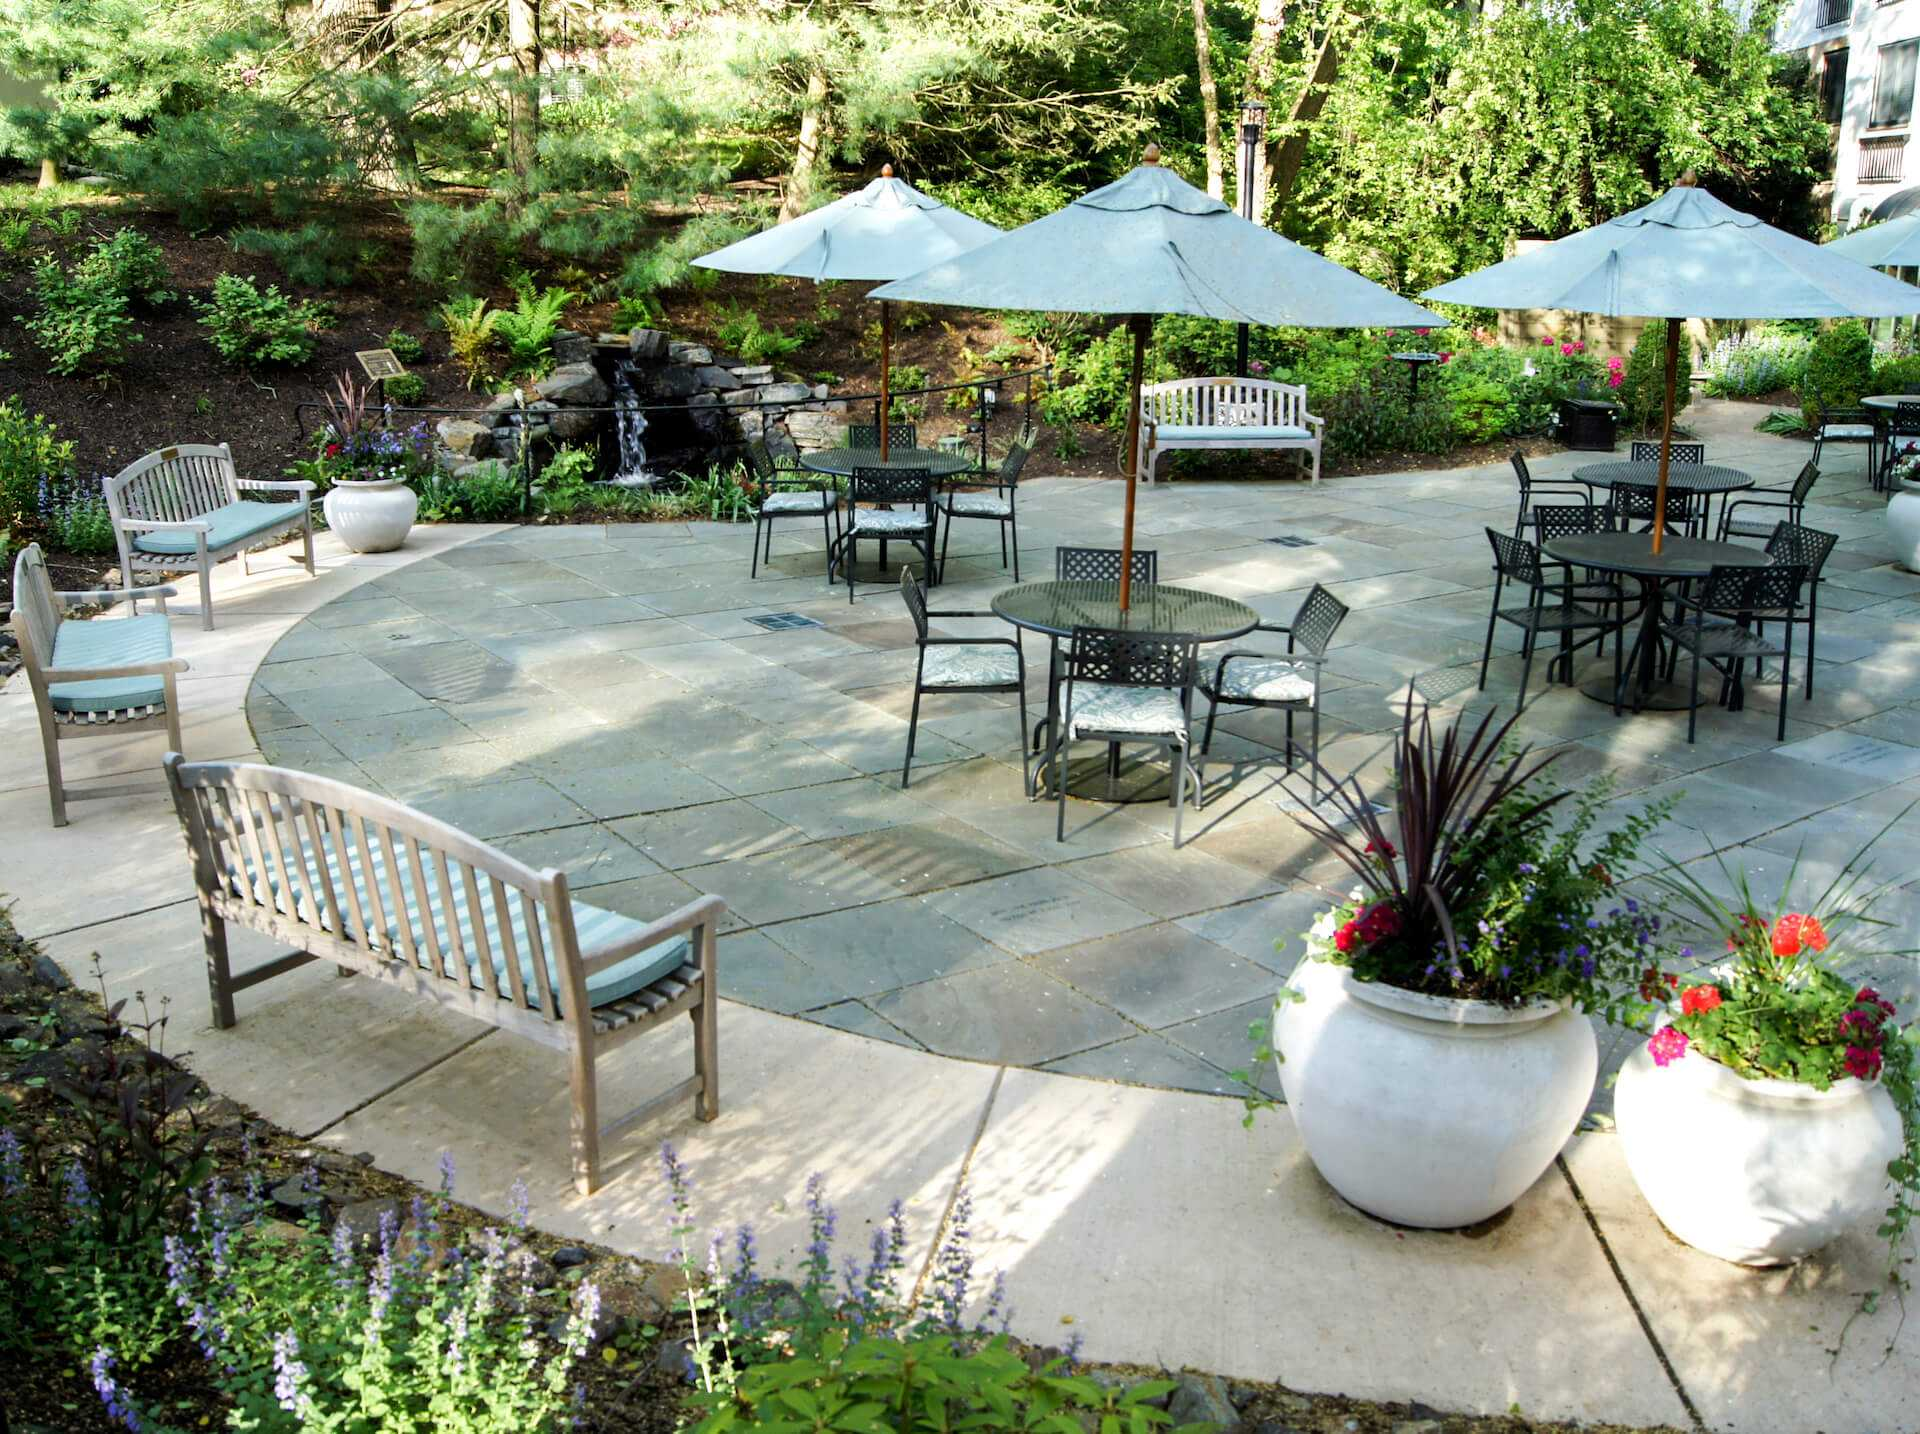 Rosemont outdoor dining area surrounded by landscaping and bench seating